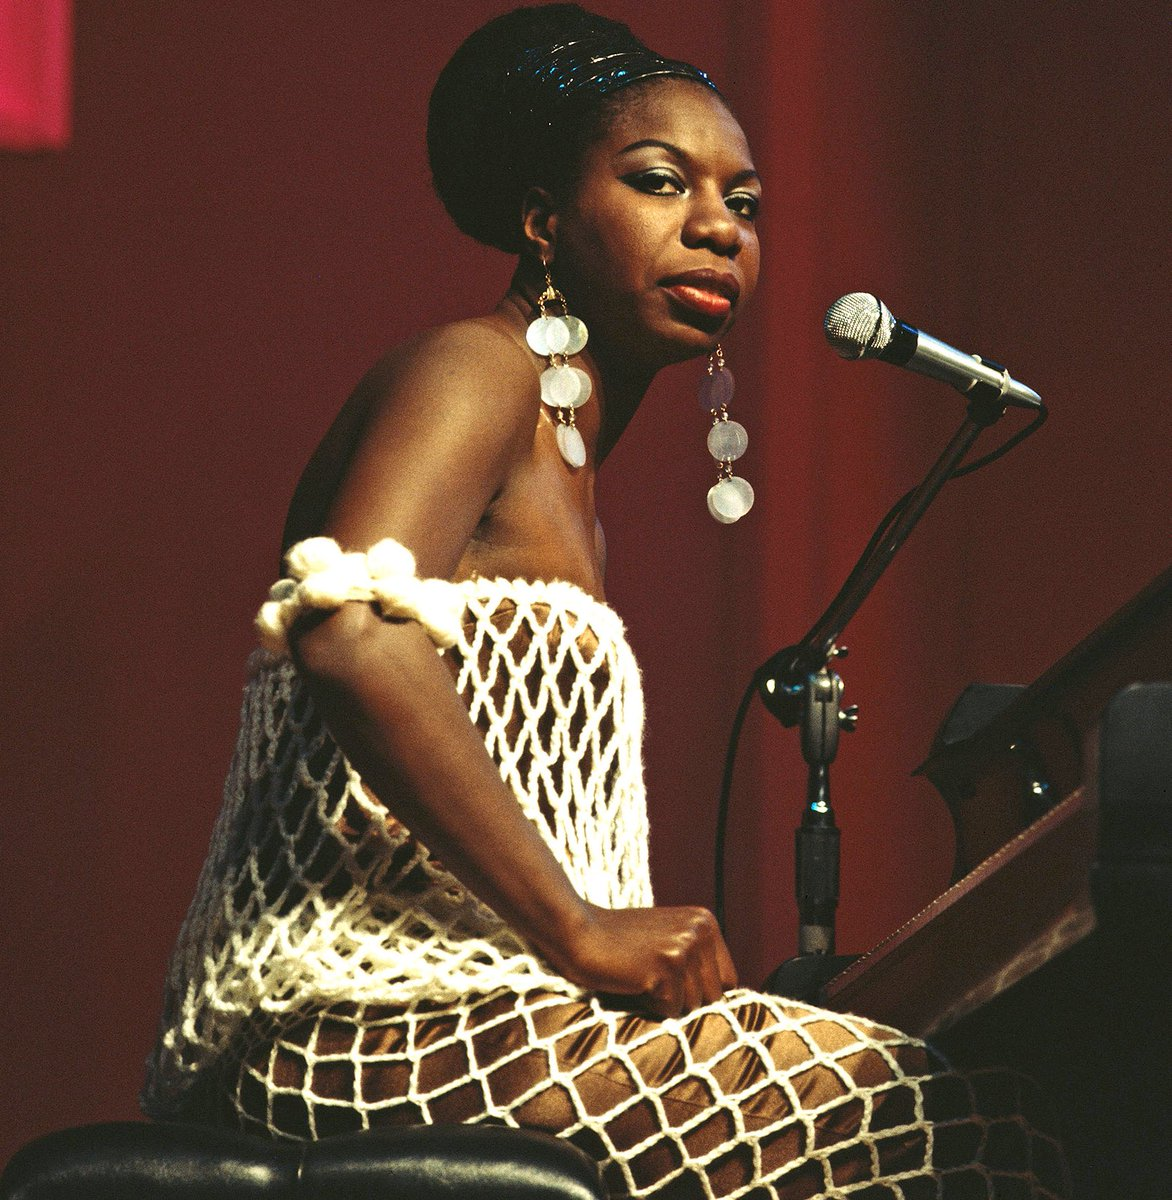 Happy Birthday to the Legendary Nina Simone. Today she would have turned 86 years old. RIP 💕